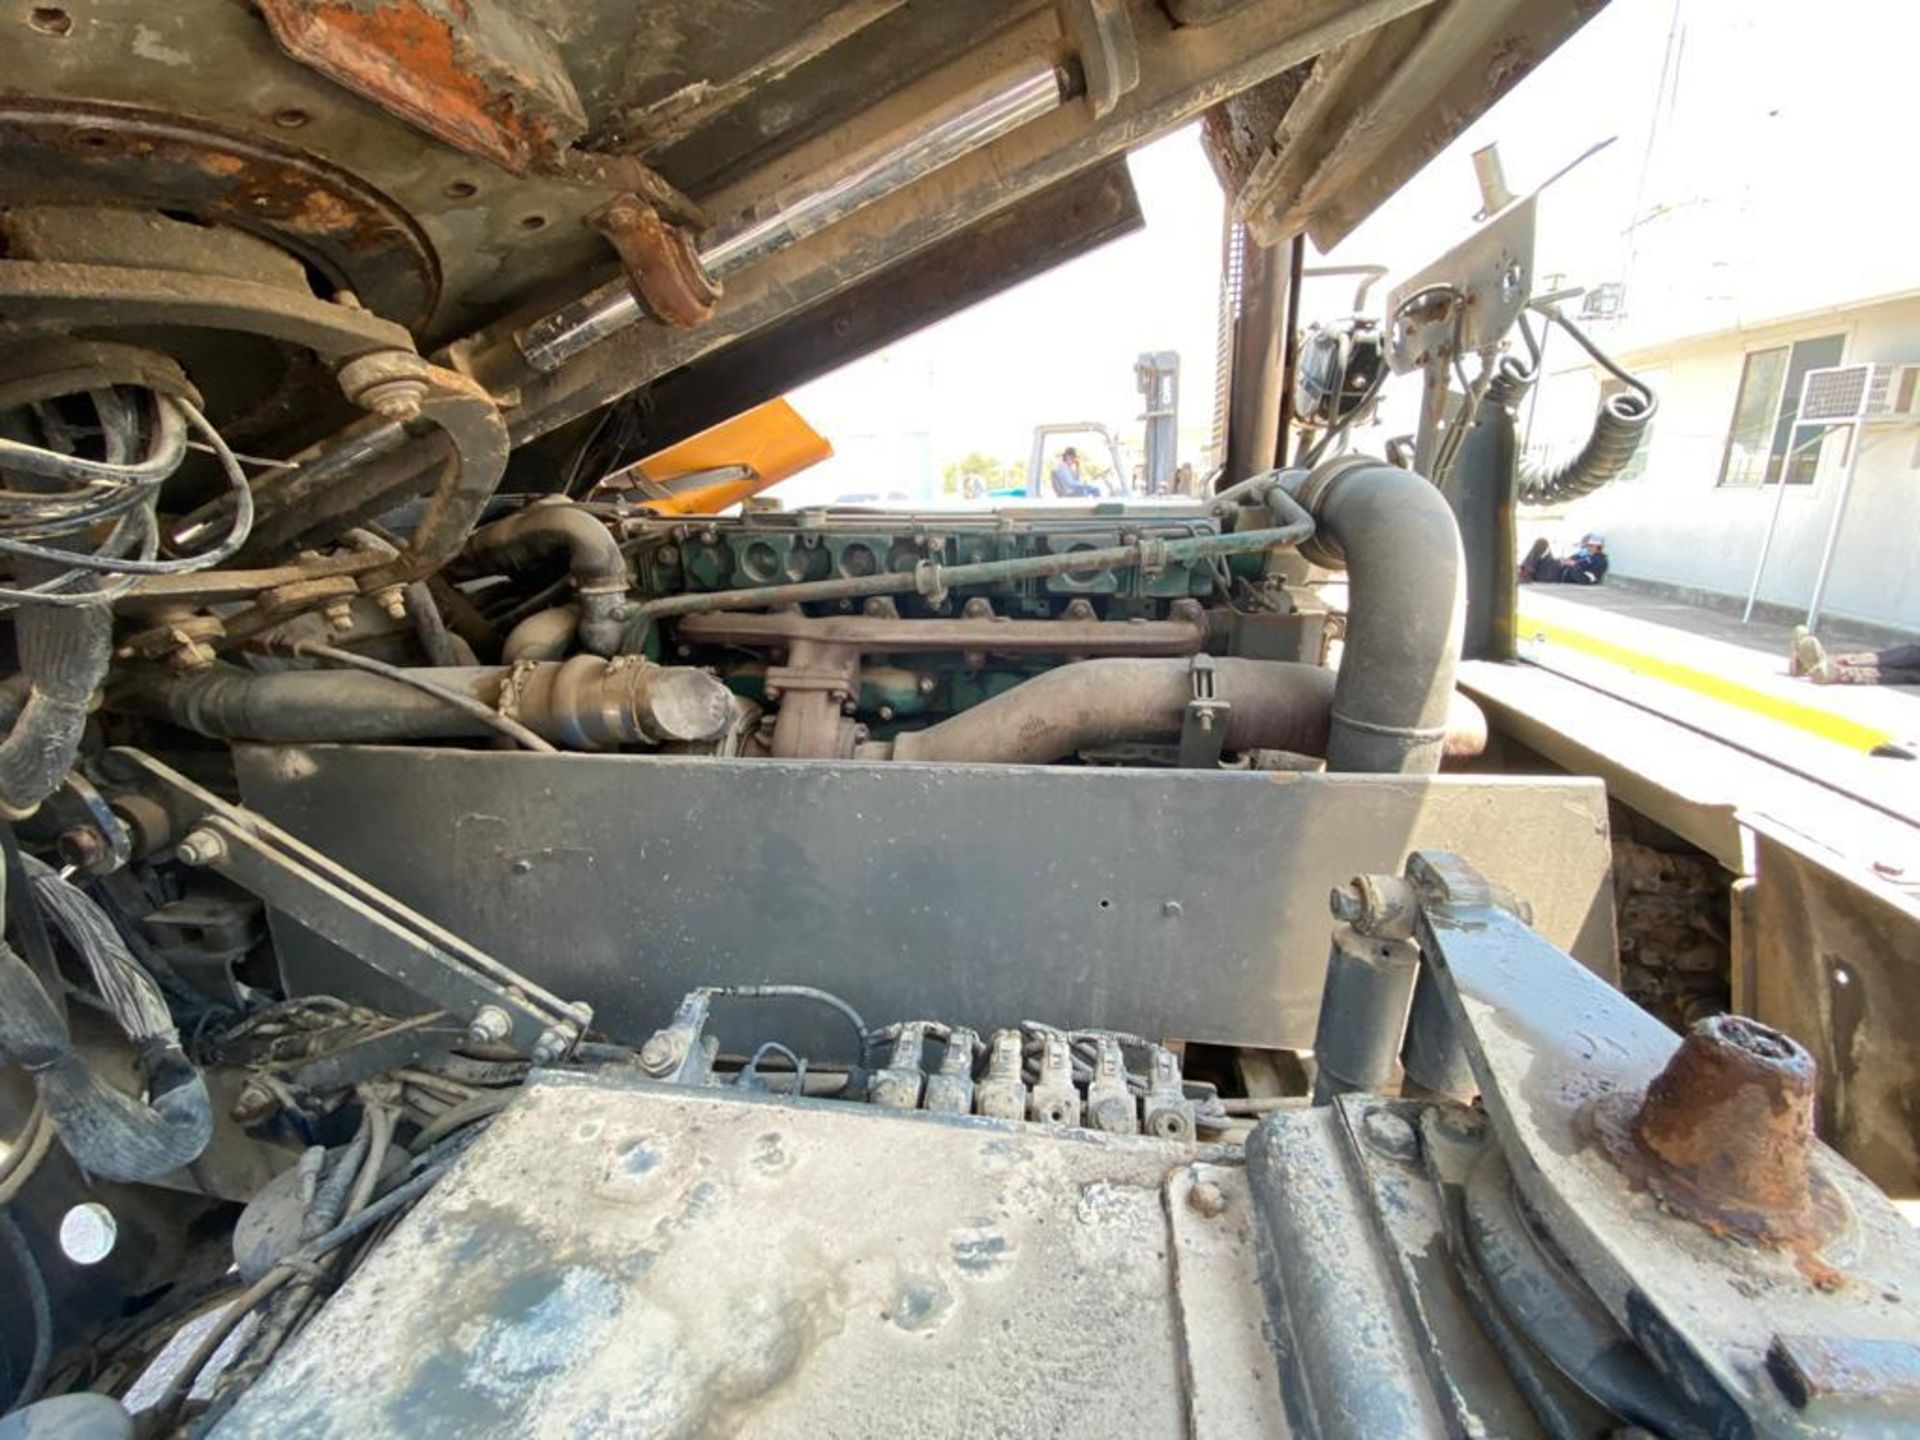 Terberg Capacity 2002 Terminal Tractor, automatic transmission, with Volvo motor - Image 38 of 57